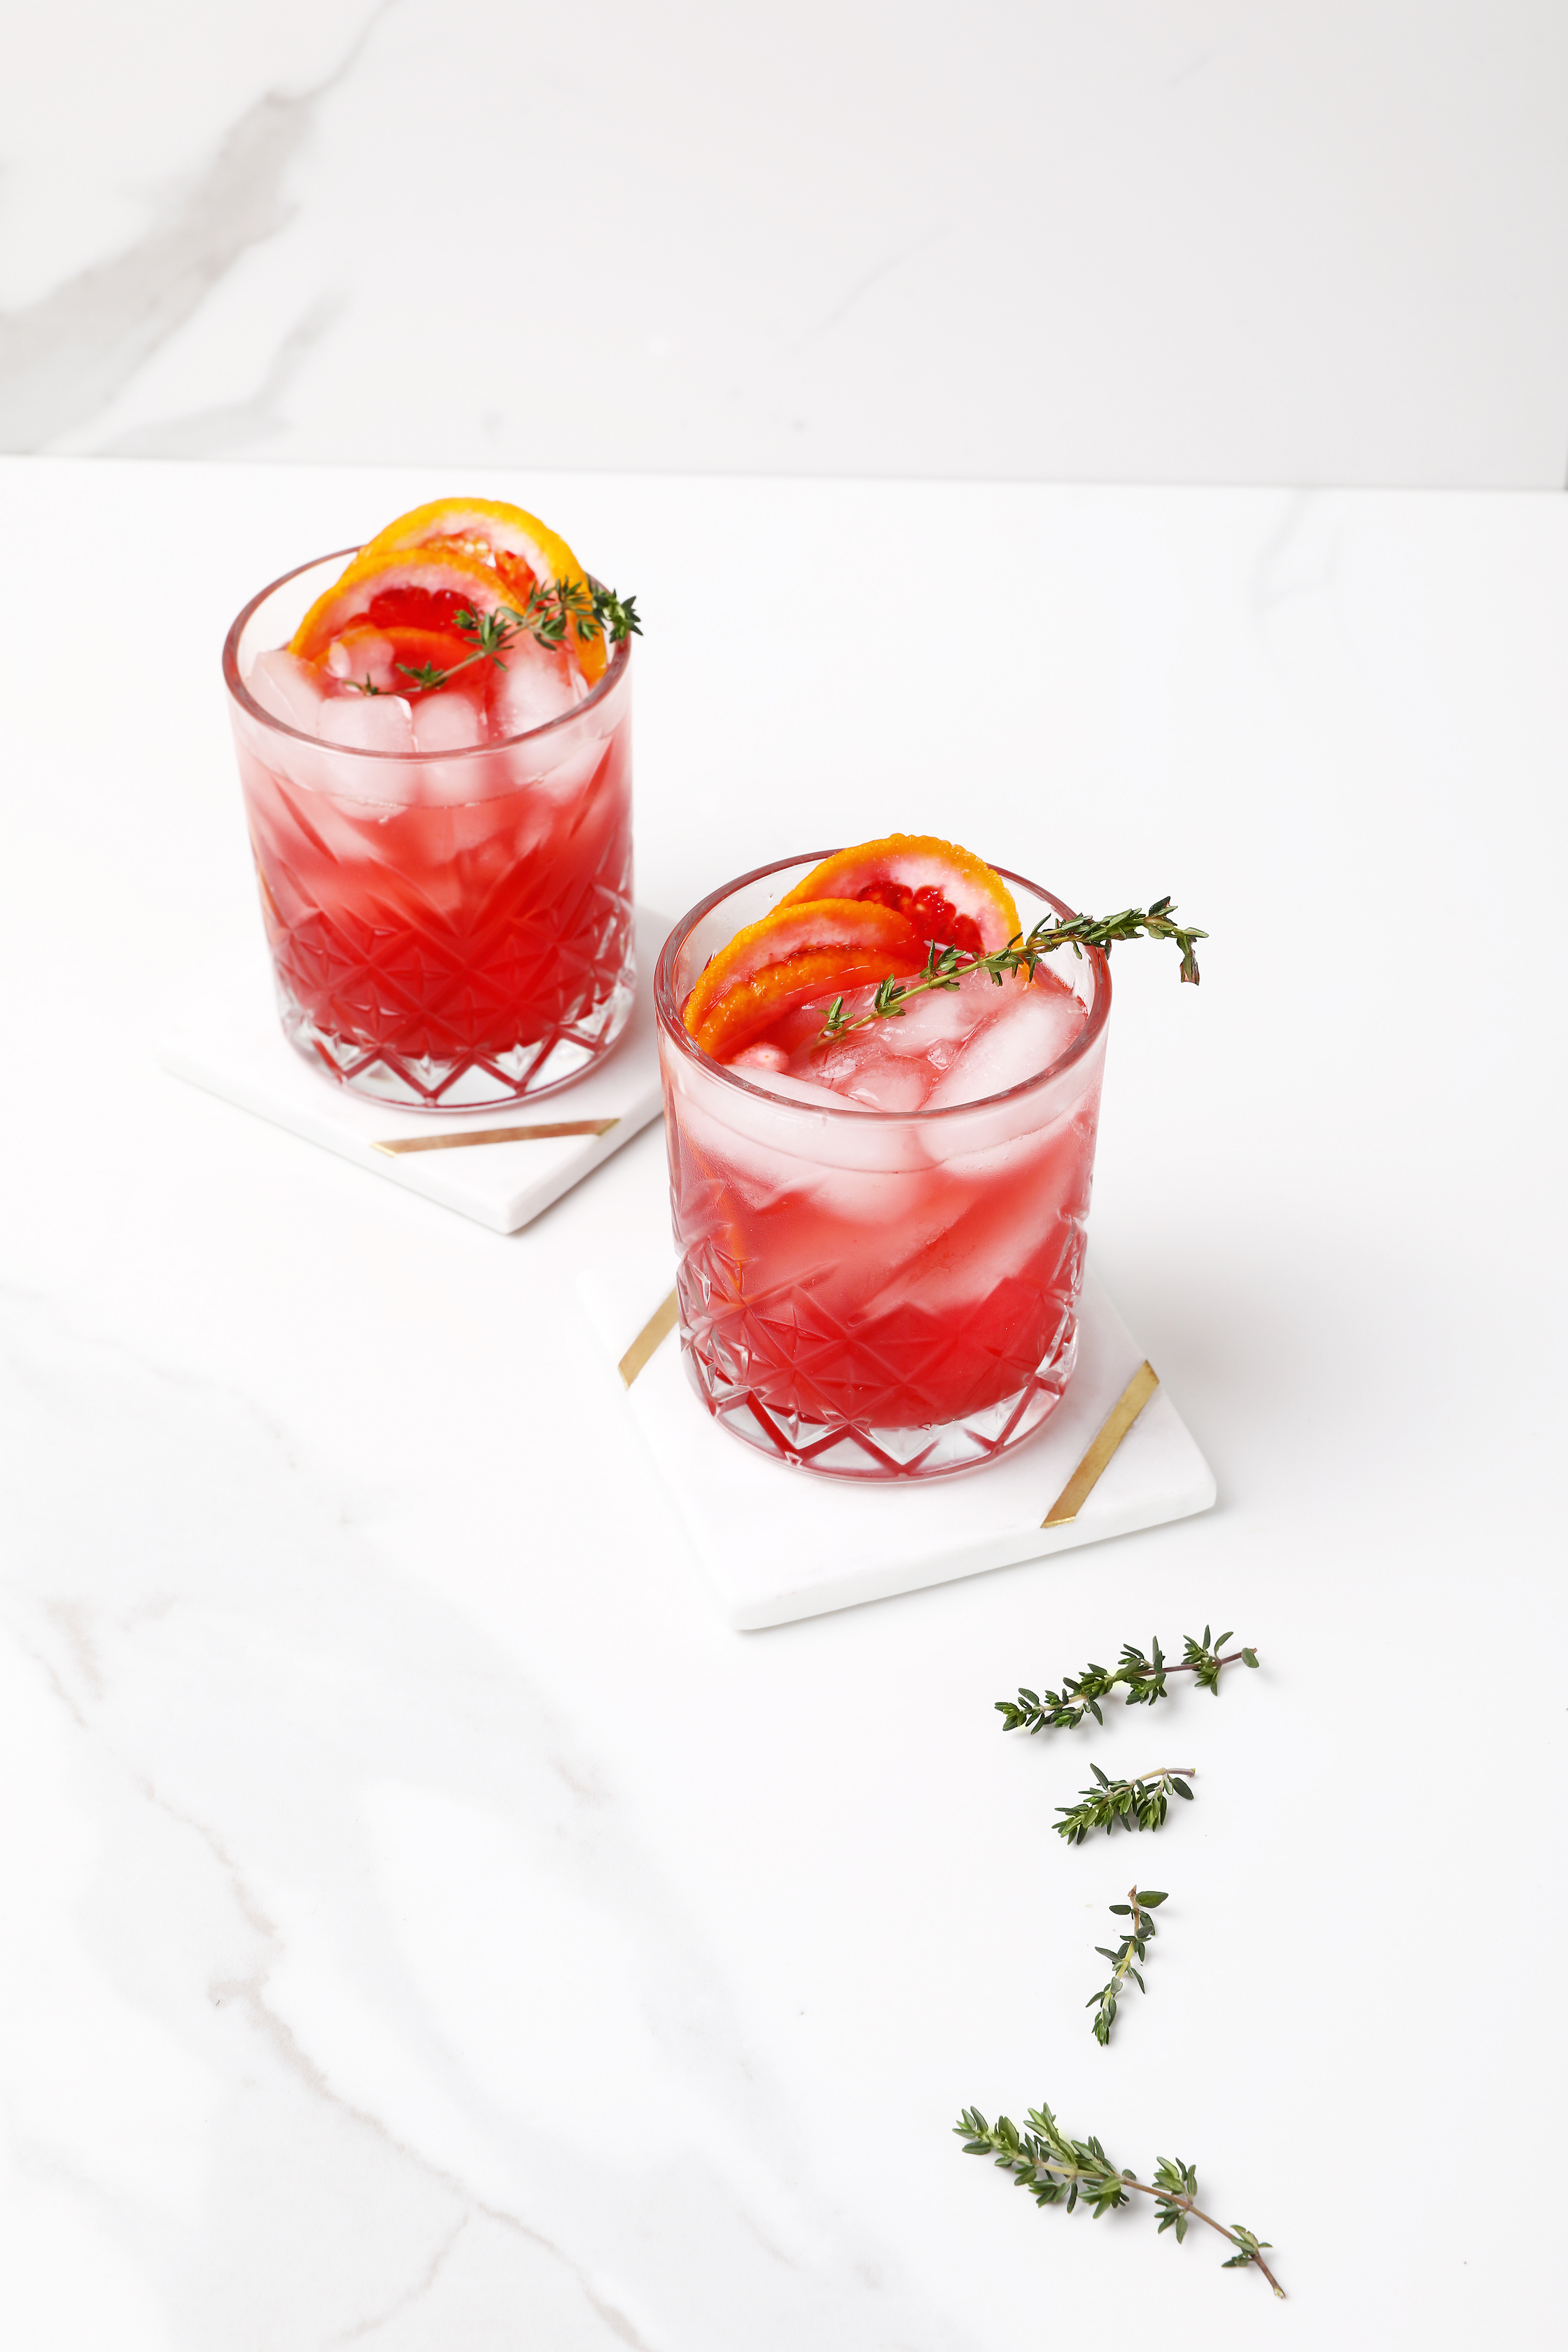 Food By Annabel - Recipe Development Gin Cocktail